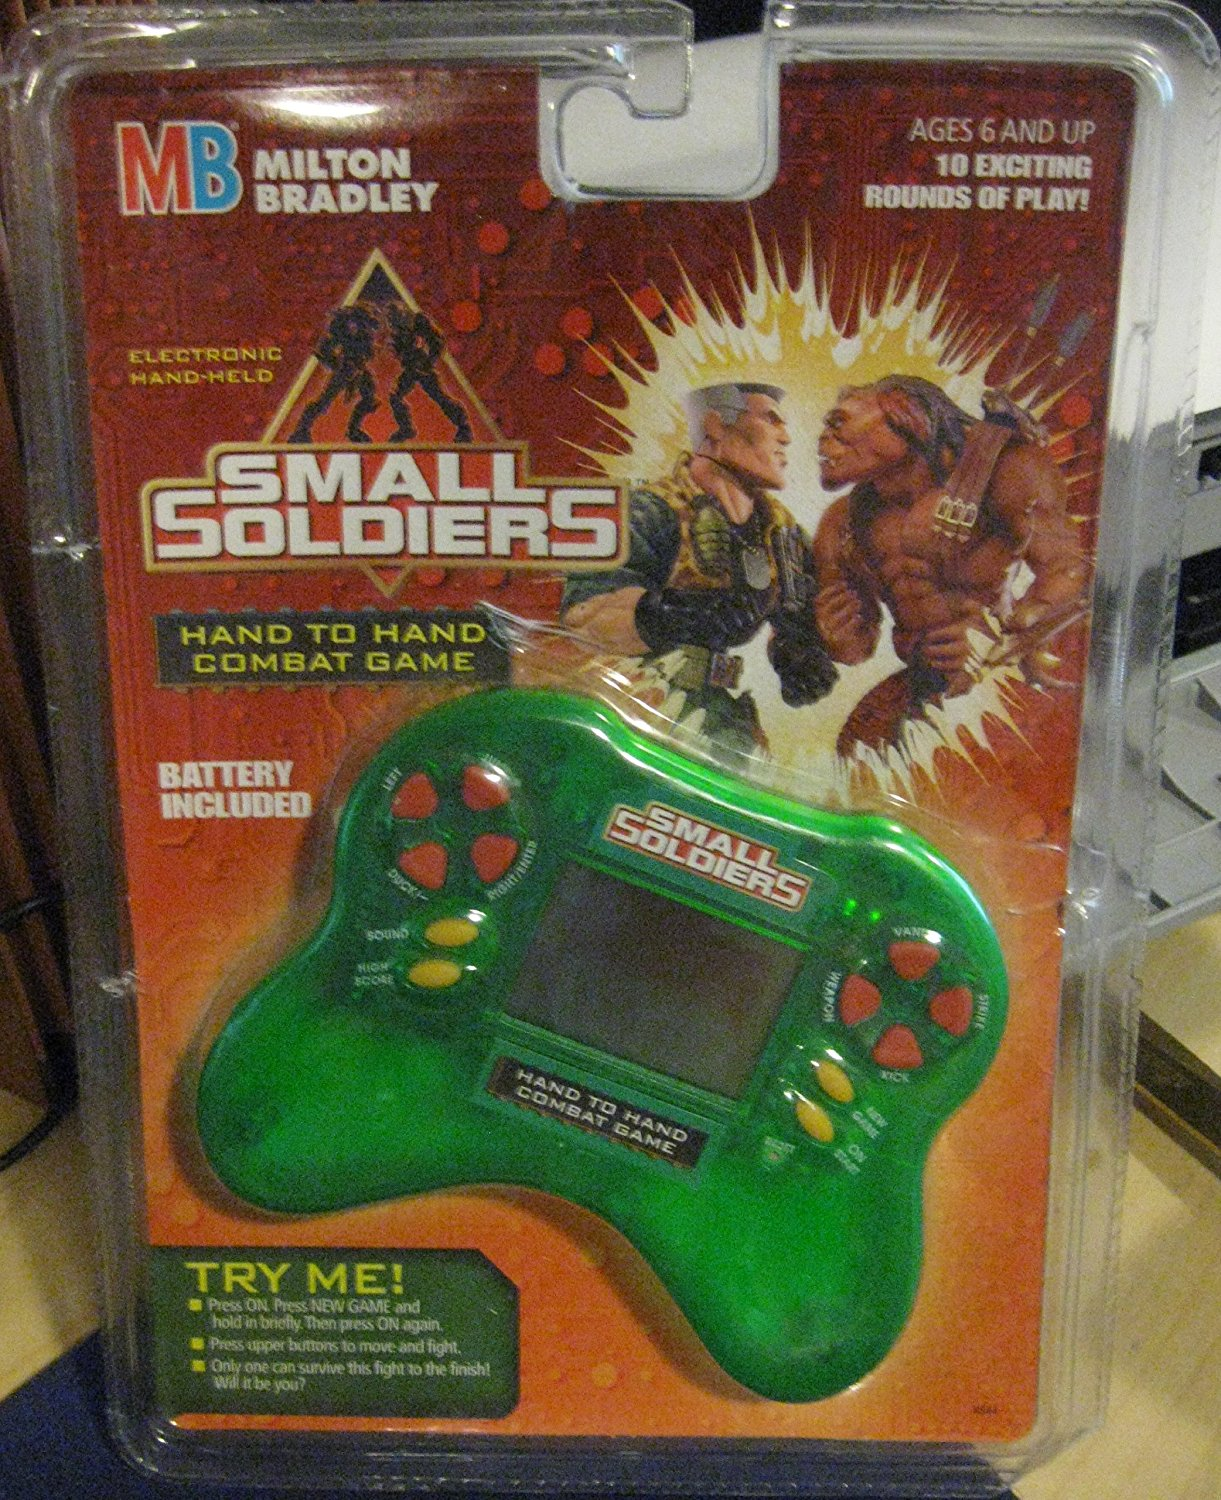 Small Soldiers Electronic Hand to Hand Combat Handheld Game by, 10 exciting rounds of play! By Milton Bradley by